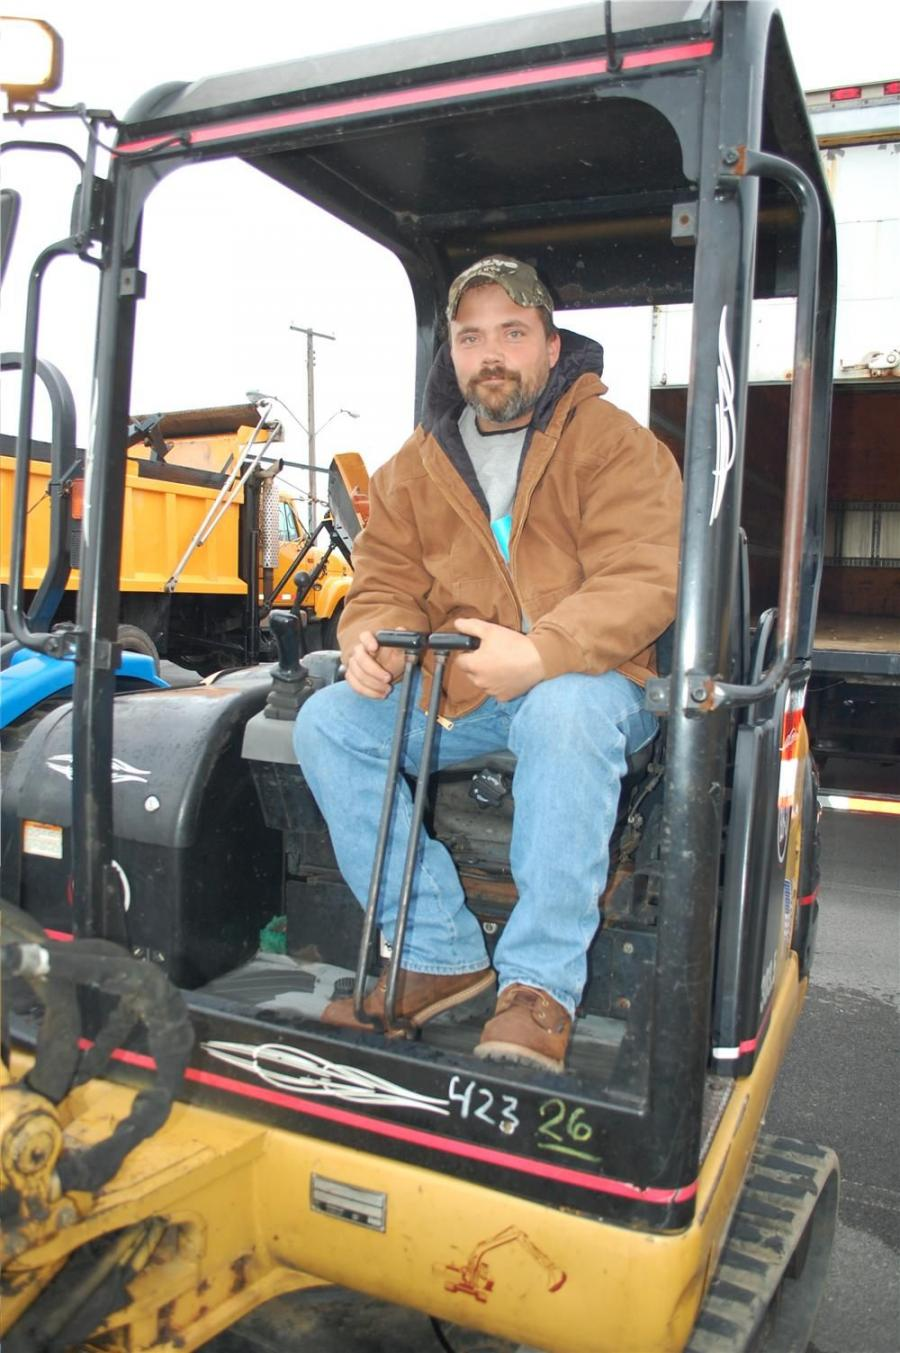 Al Smith of Wood Stone & Earth Construction, Palmyra, N.Y., has his eye on this Caterpillar 303.5 compact excavator.